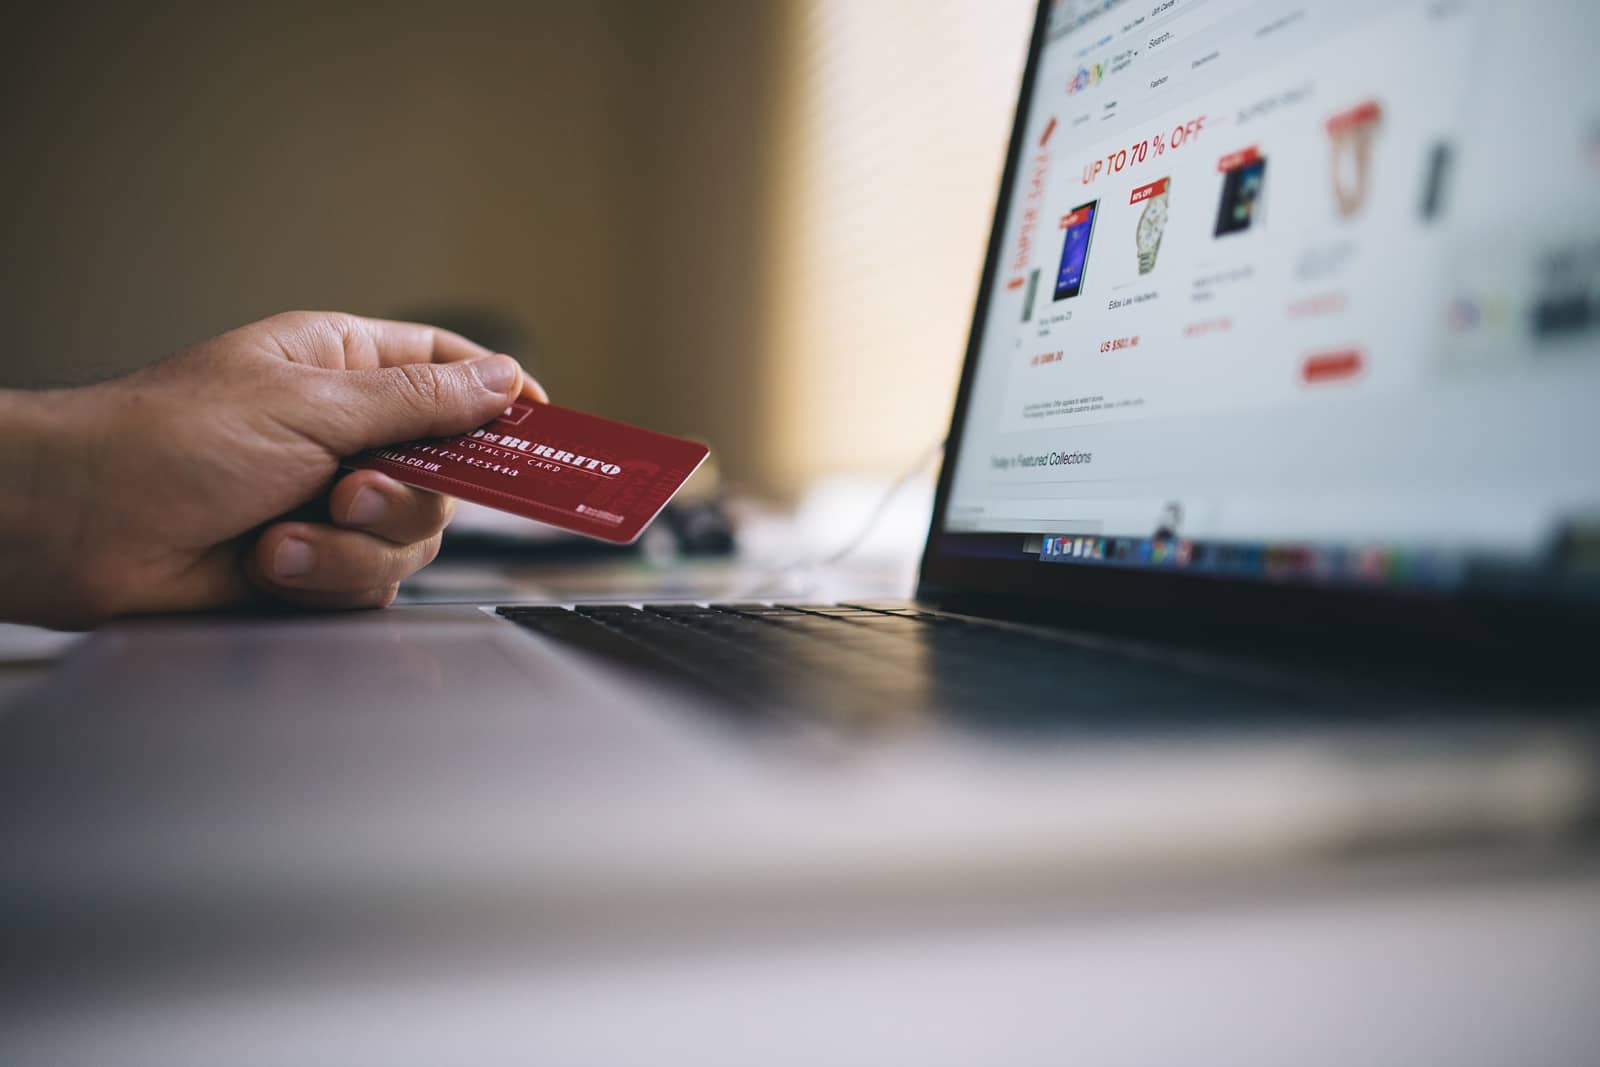 Stock image of consumer using credit card at computer. To find the TransUnion credit freeze page, follow these steps.